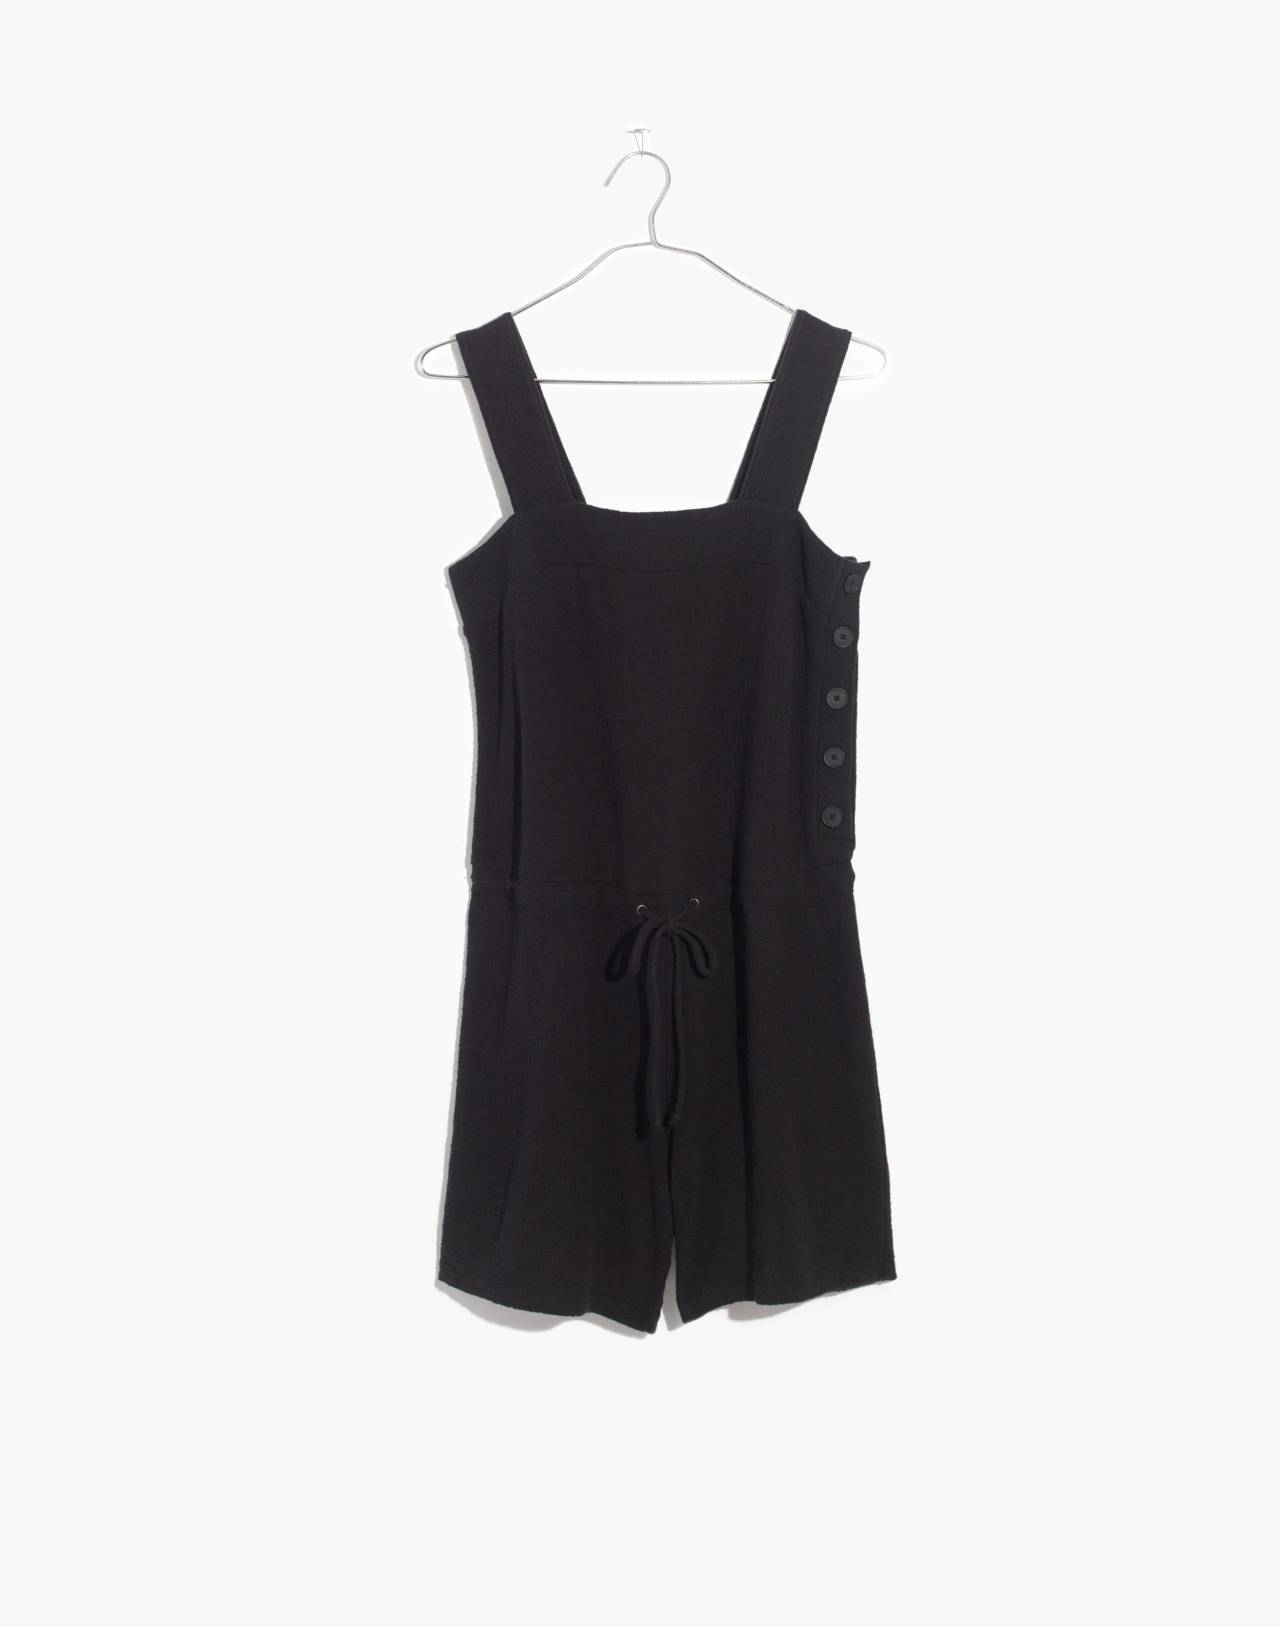 Side-Button Drawstring Romper in true black image 4